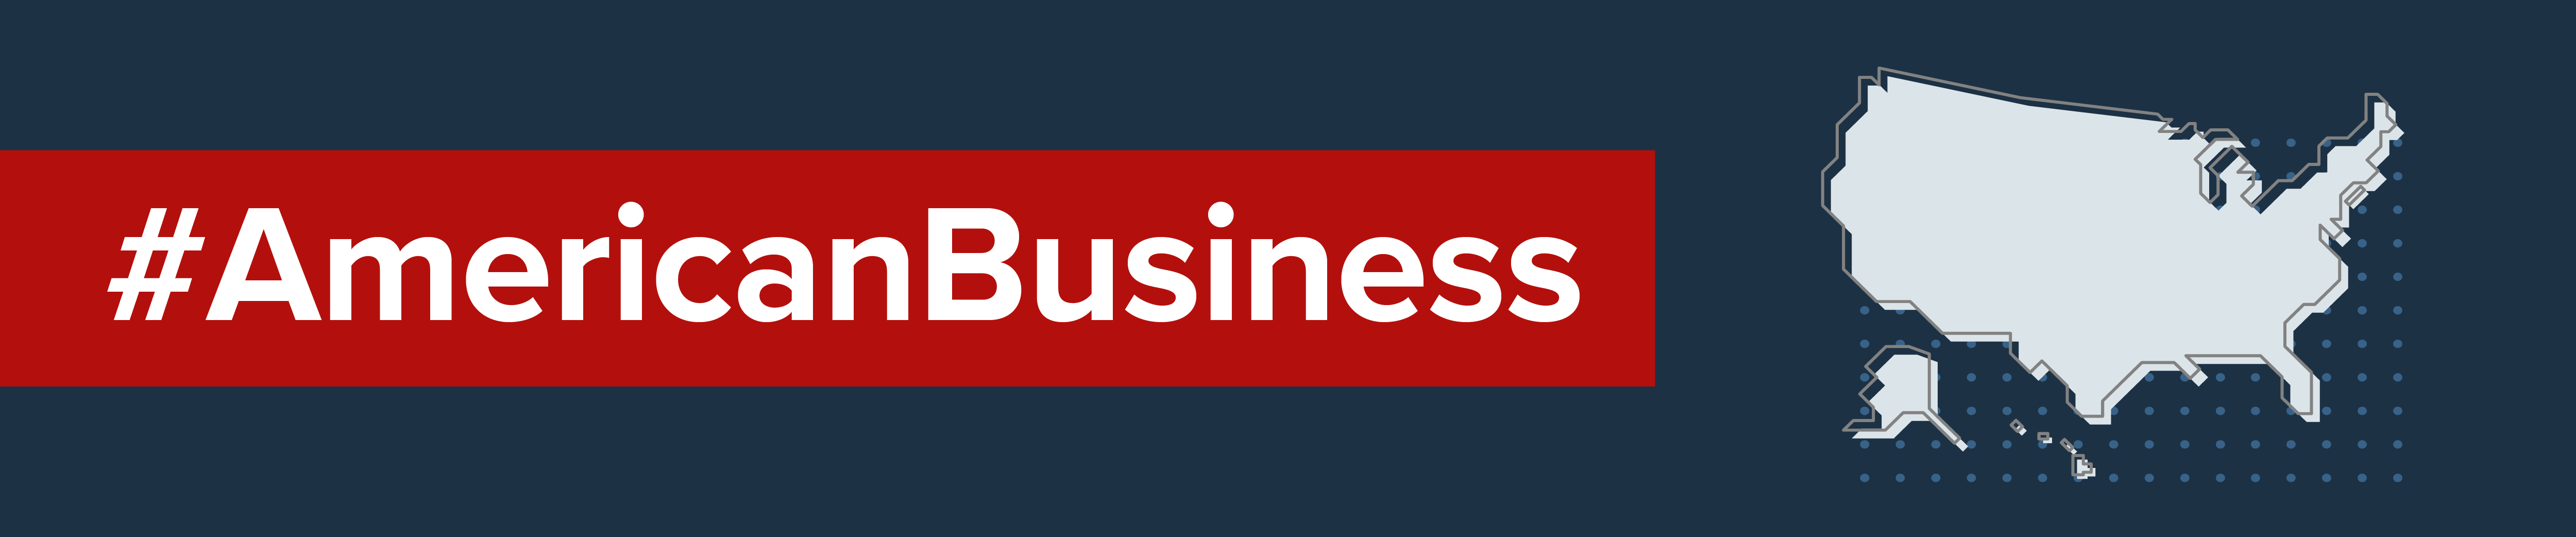 American Business banner